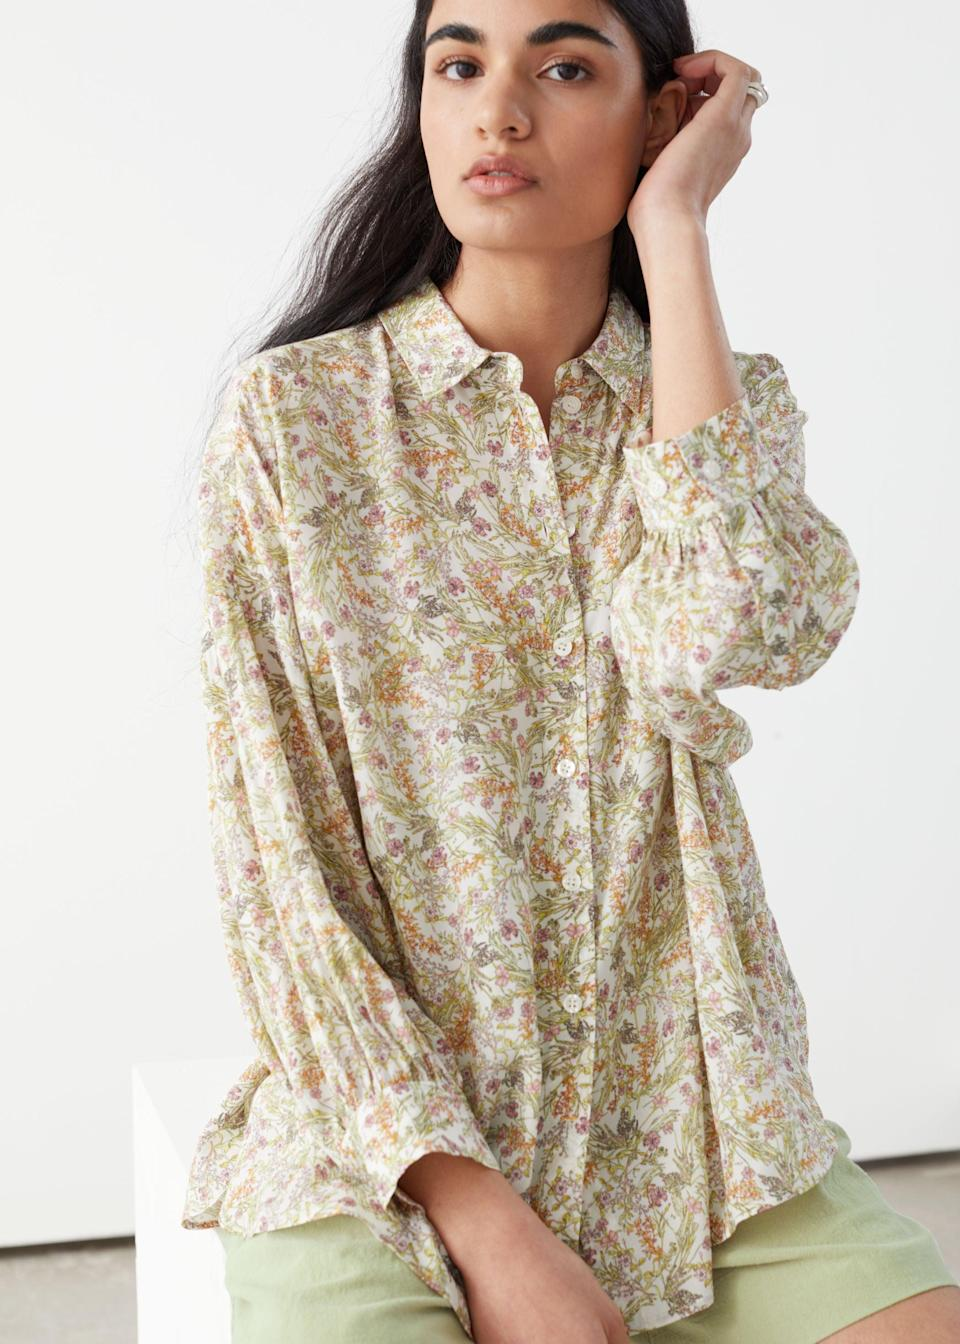 """<br> <br> <strong>& Other Stories</strong> Semi Sheer Floral Print Blouse, $, available at <a href=""""https://go.skimresources.com/?id=30283X879131&url=https%3A%2F%2Fwww.stories.com%2Fen_usd%2Fclothing%2Fblouses-shirts%2Fshirts%2Fproduct.semi-sheer-floral-print-blouse-white.0803805002.html"""" rel=""""nofollow noopener"""" target=""""_blank"""" data-ylk=""""slk:& Other Stories"""" class=""""link rapid-noclick-resp"""">& Other Stories</a>"""